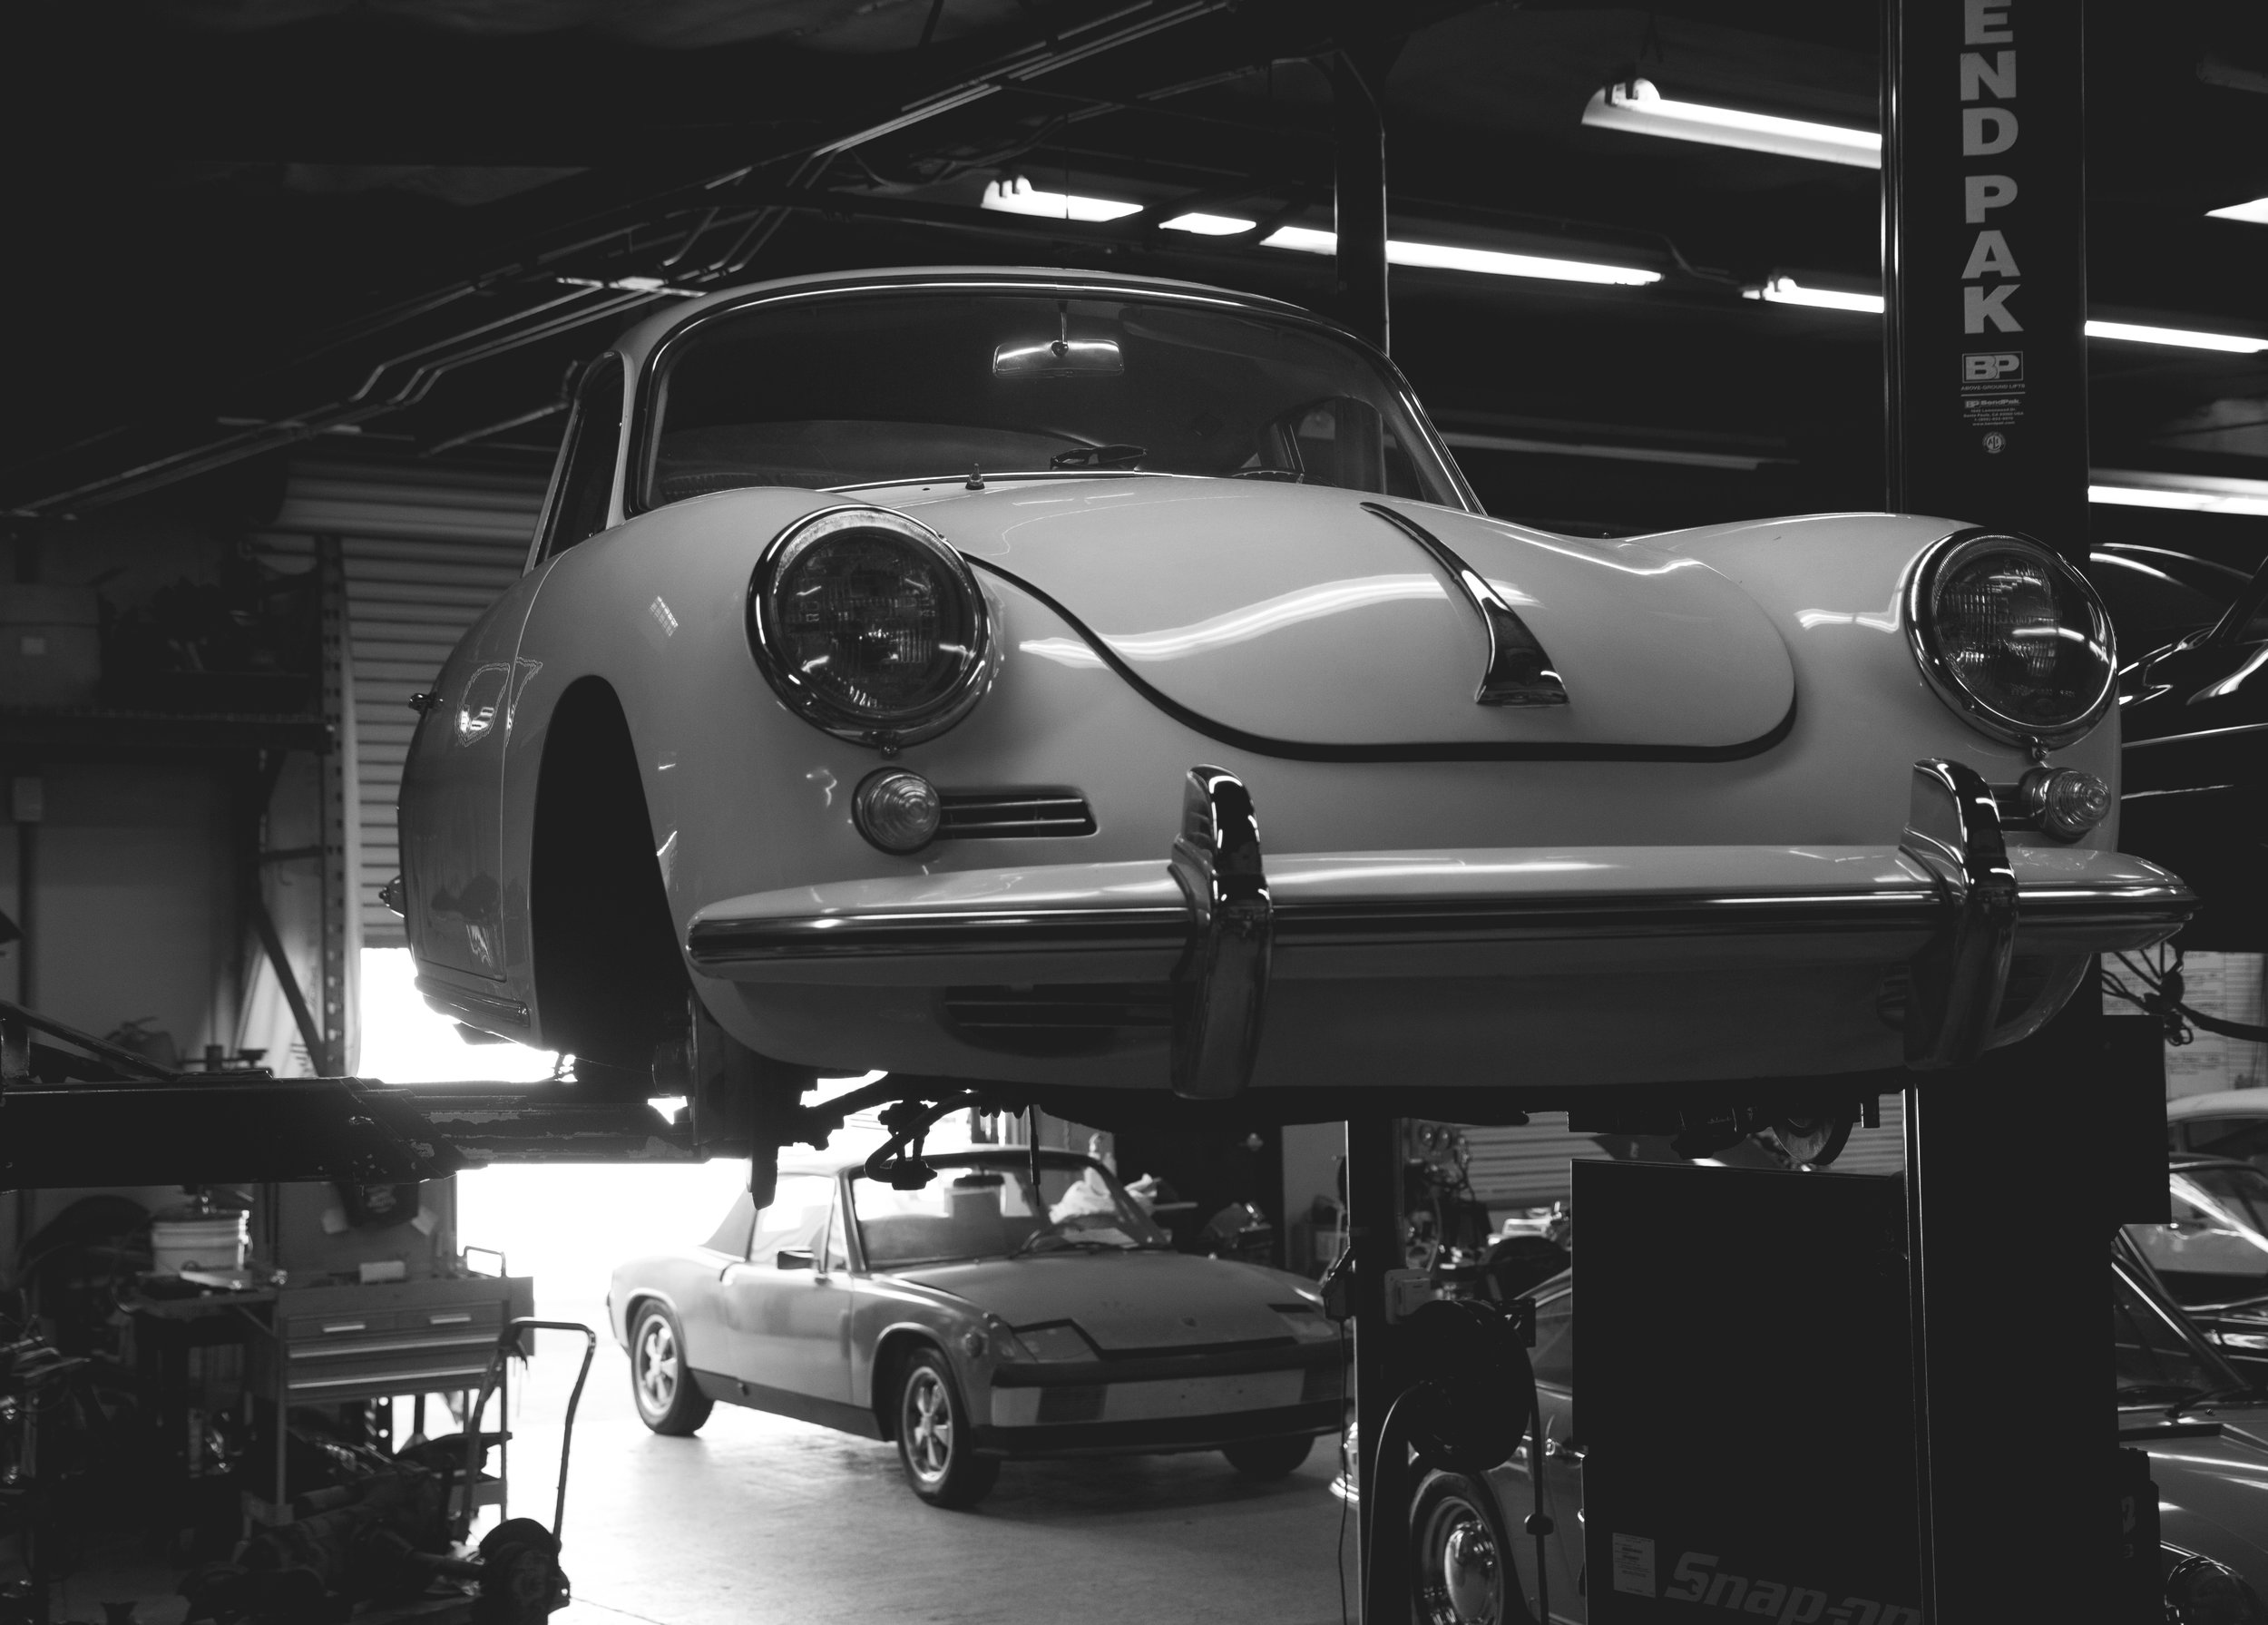 - Our facility is located in Anaheim, at the heart of Orange County. A 6,800 sq.ft. facility that boasts four lifts, a dedicated engine section, exhaust/suspension area and a fully-stocked parts department, we have the tools, the expertise and the enthusiasm that your aircooled steed needs.Make an appointment today and see what we can do for you.